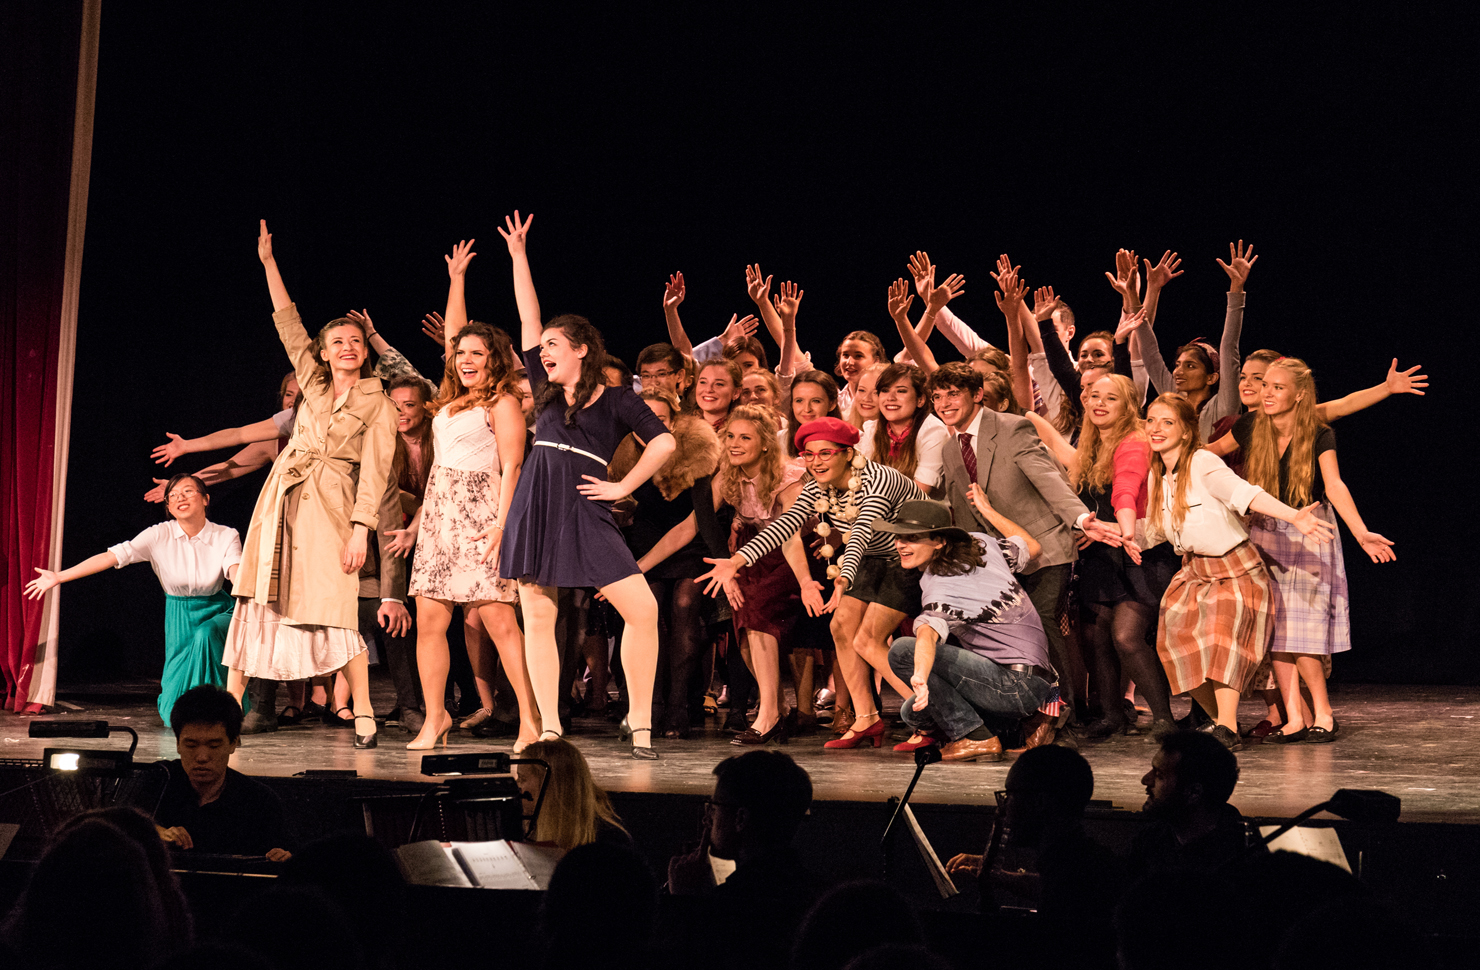 There was a cast of over 40 people in the production   Image: Lewis Palmer